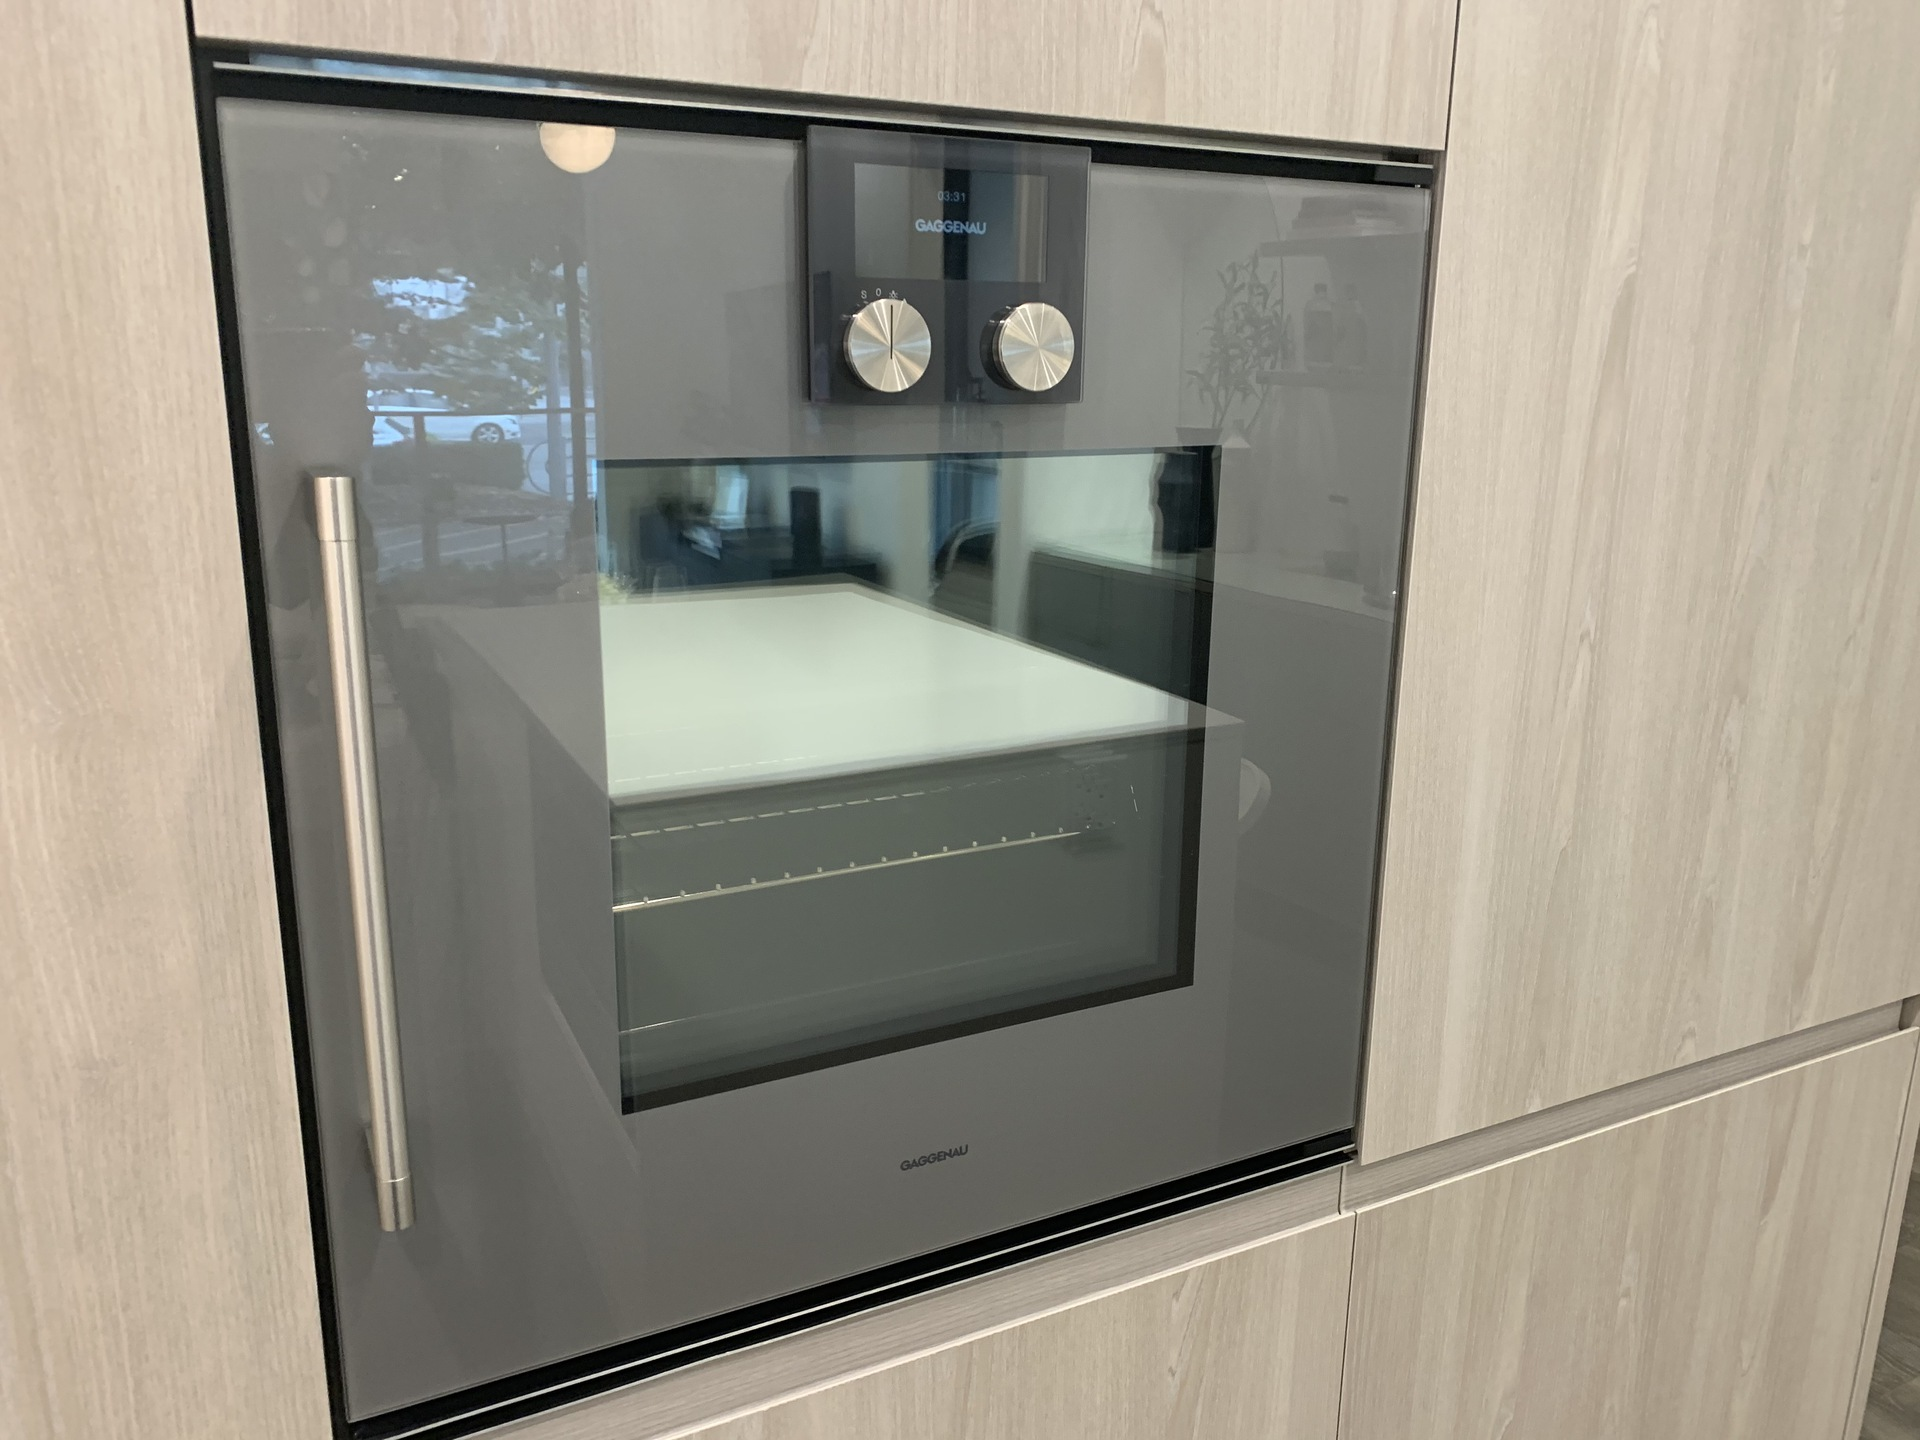 RC one bed Gaggenau wall oven at RC at CF Richmond Centre (6331 Number 3 Road, Brighouse, Richmond)